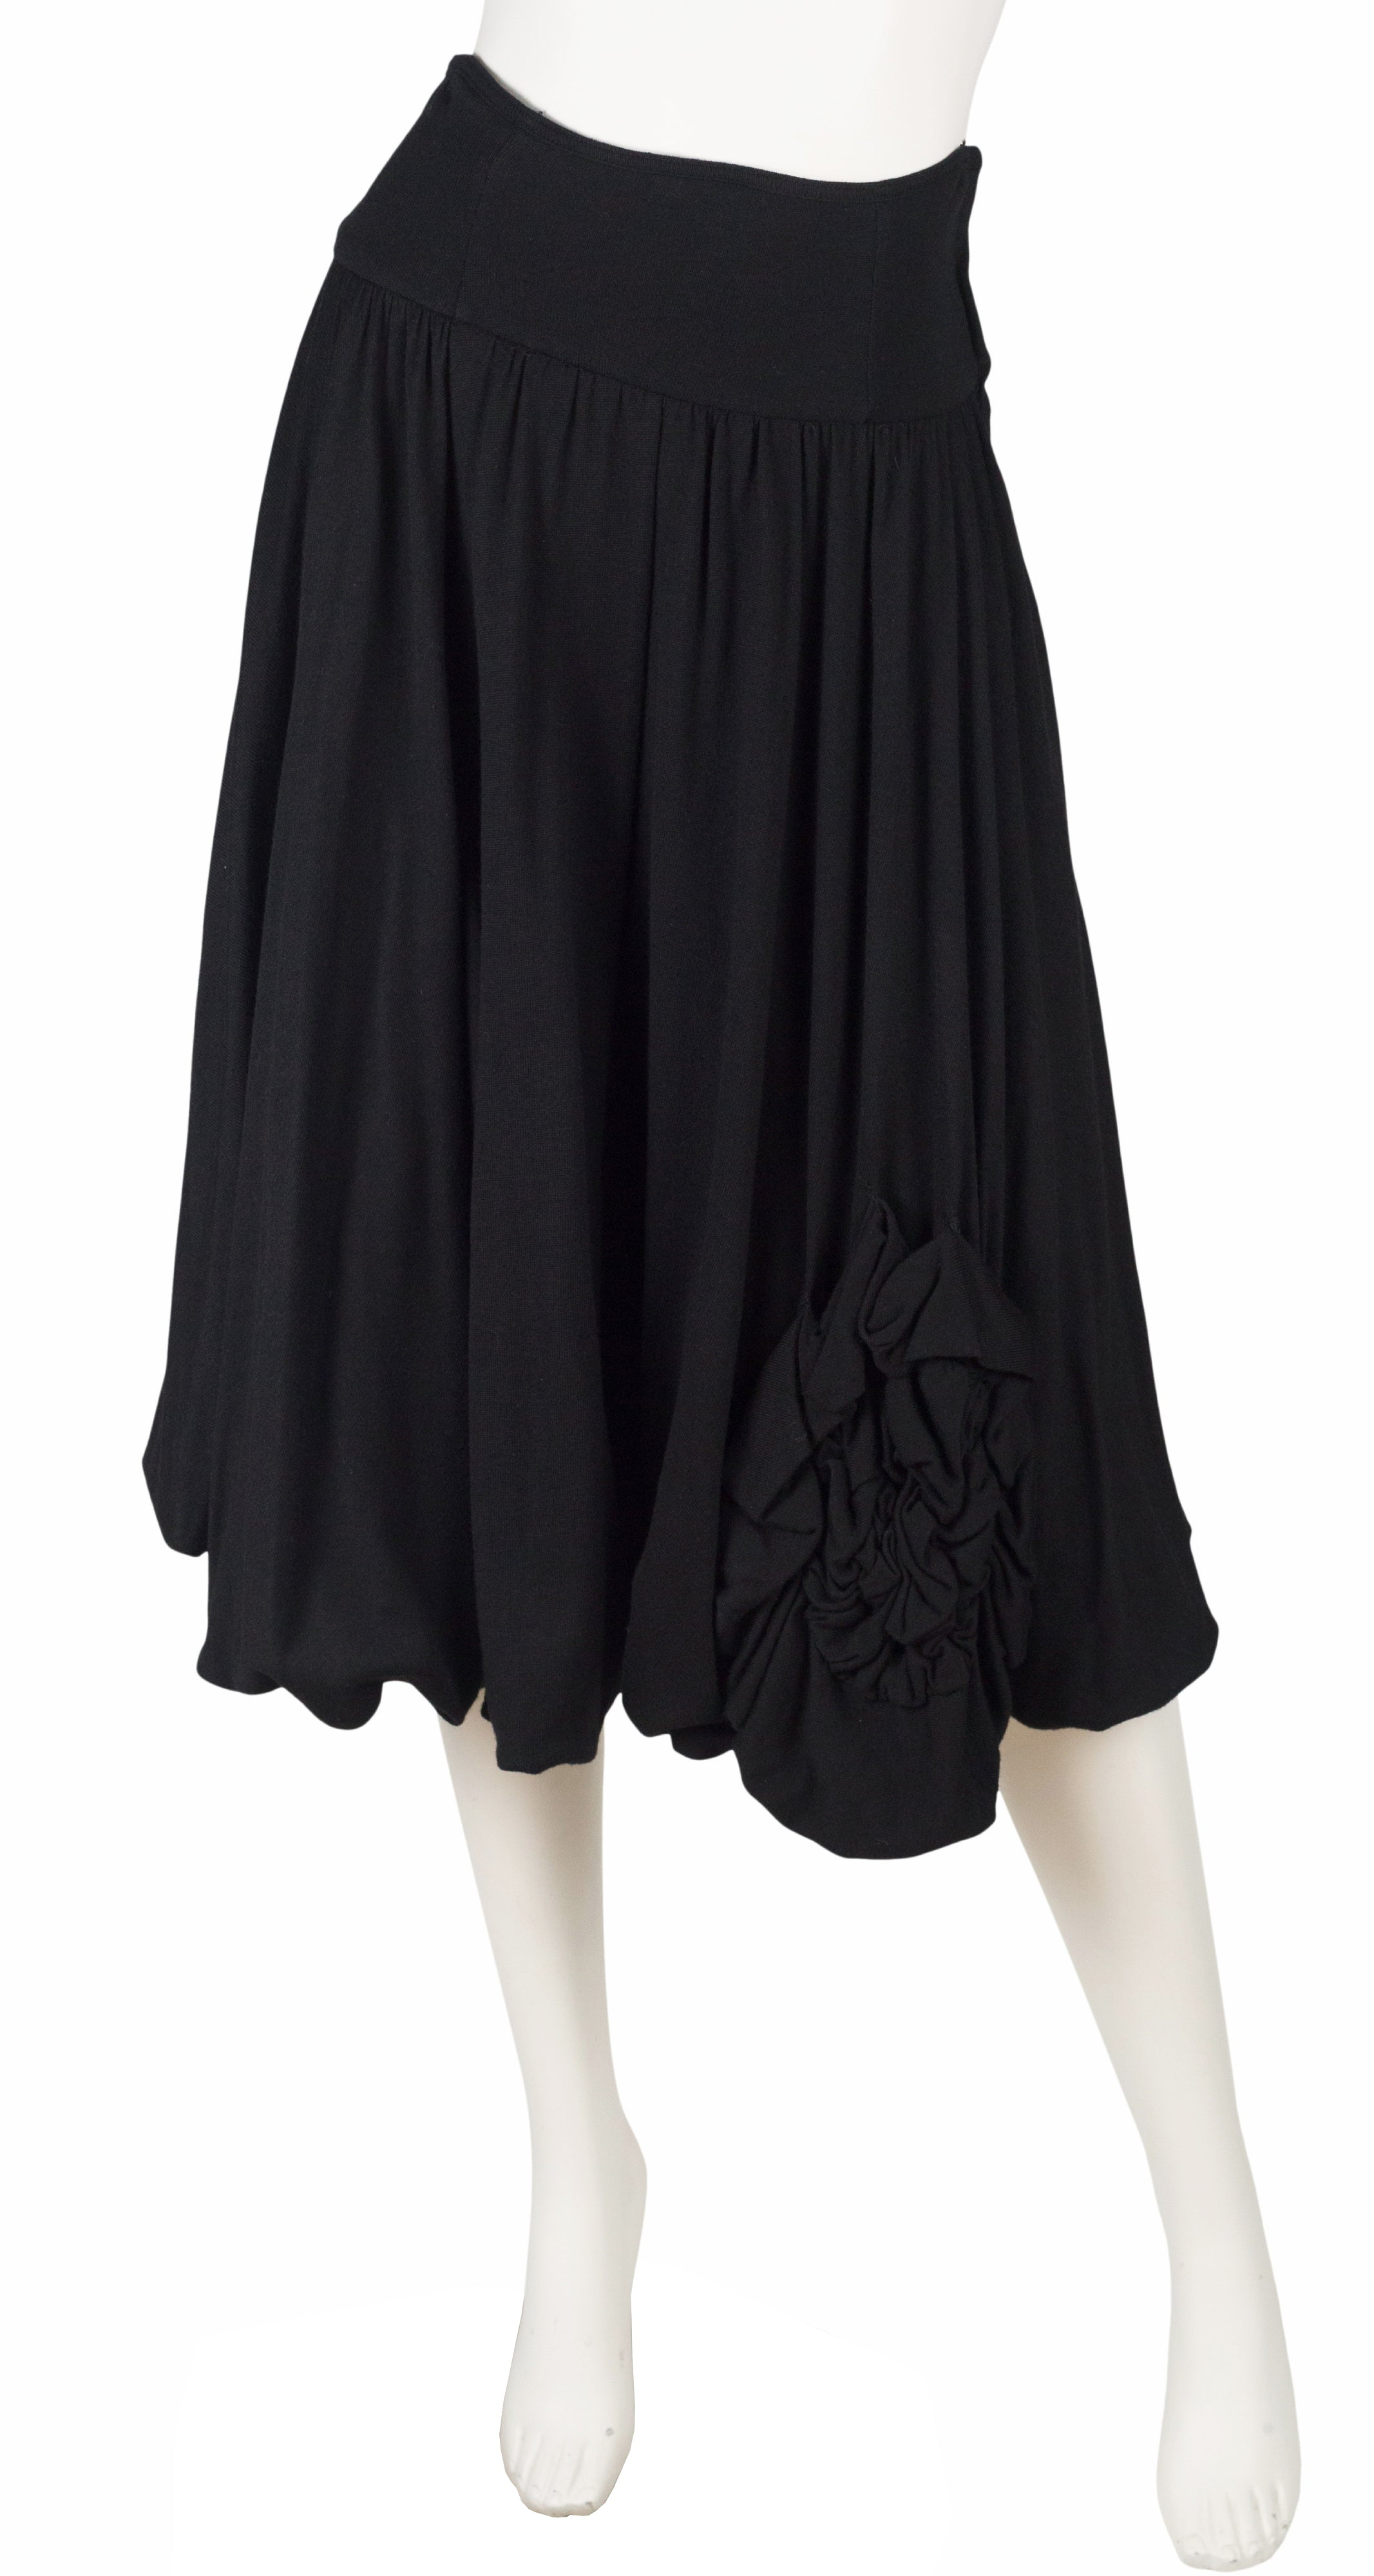 1980s Black Wool Jersey High-Waisted Skirt